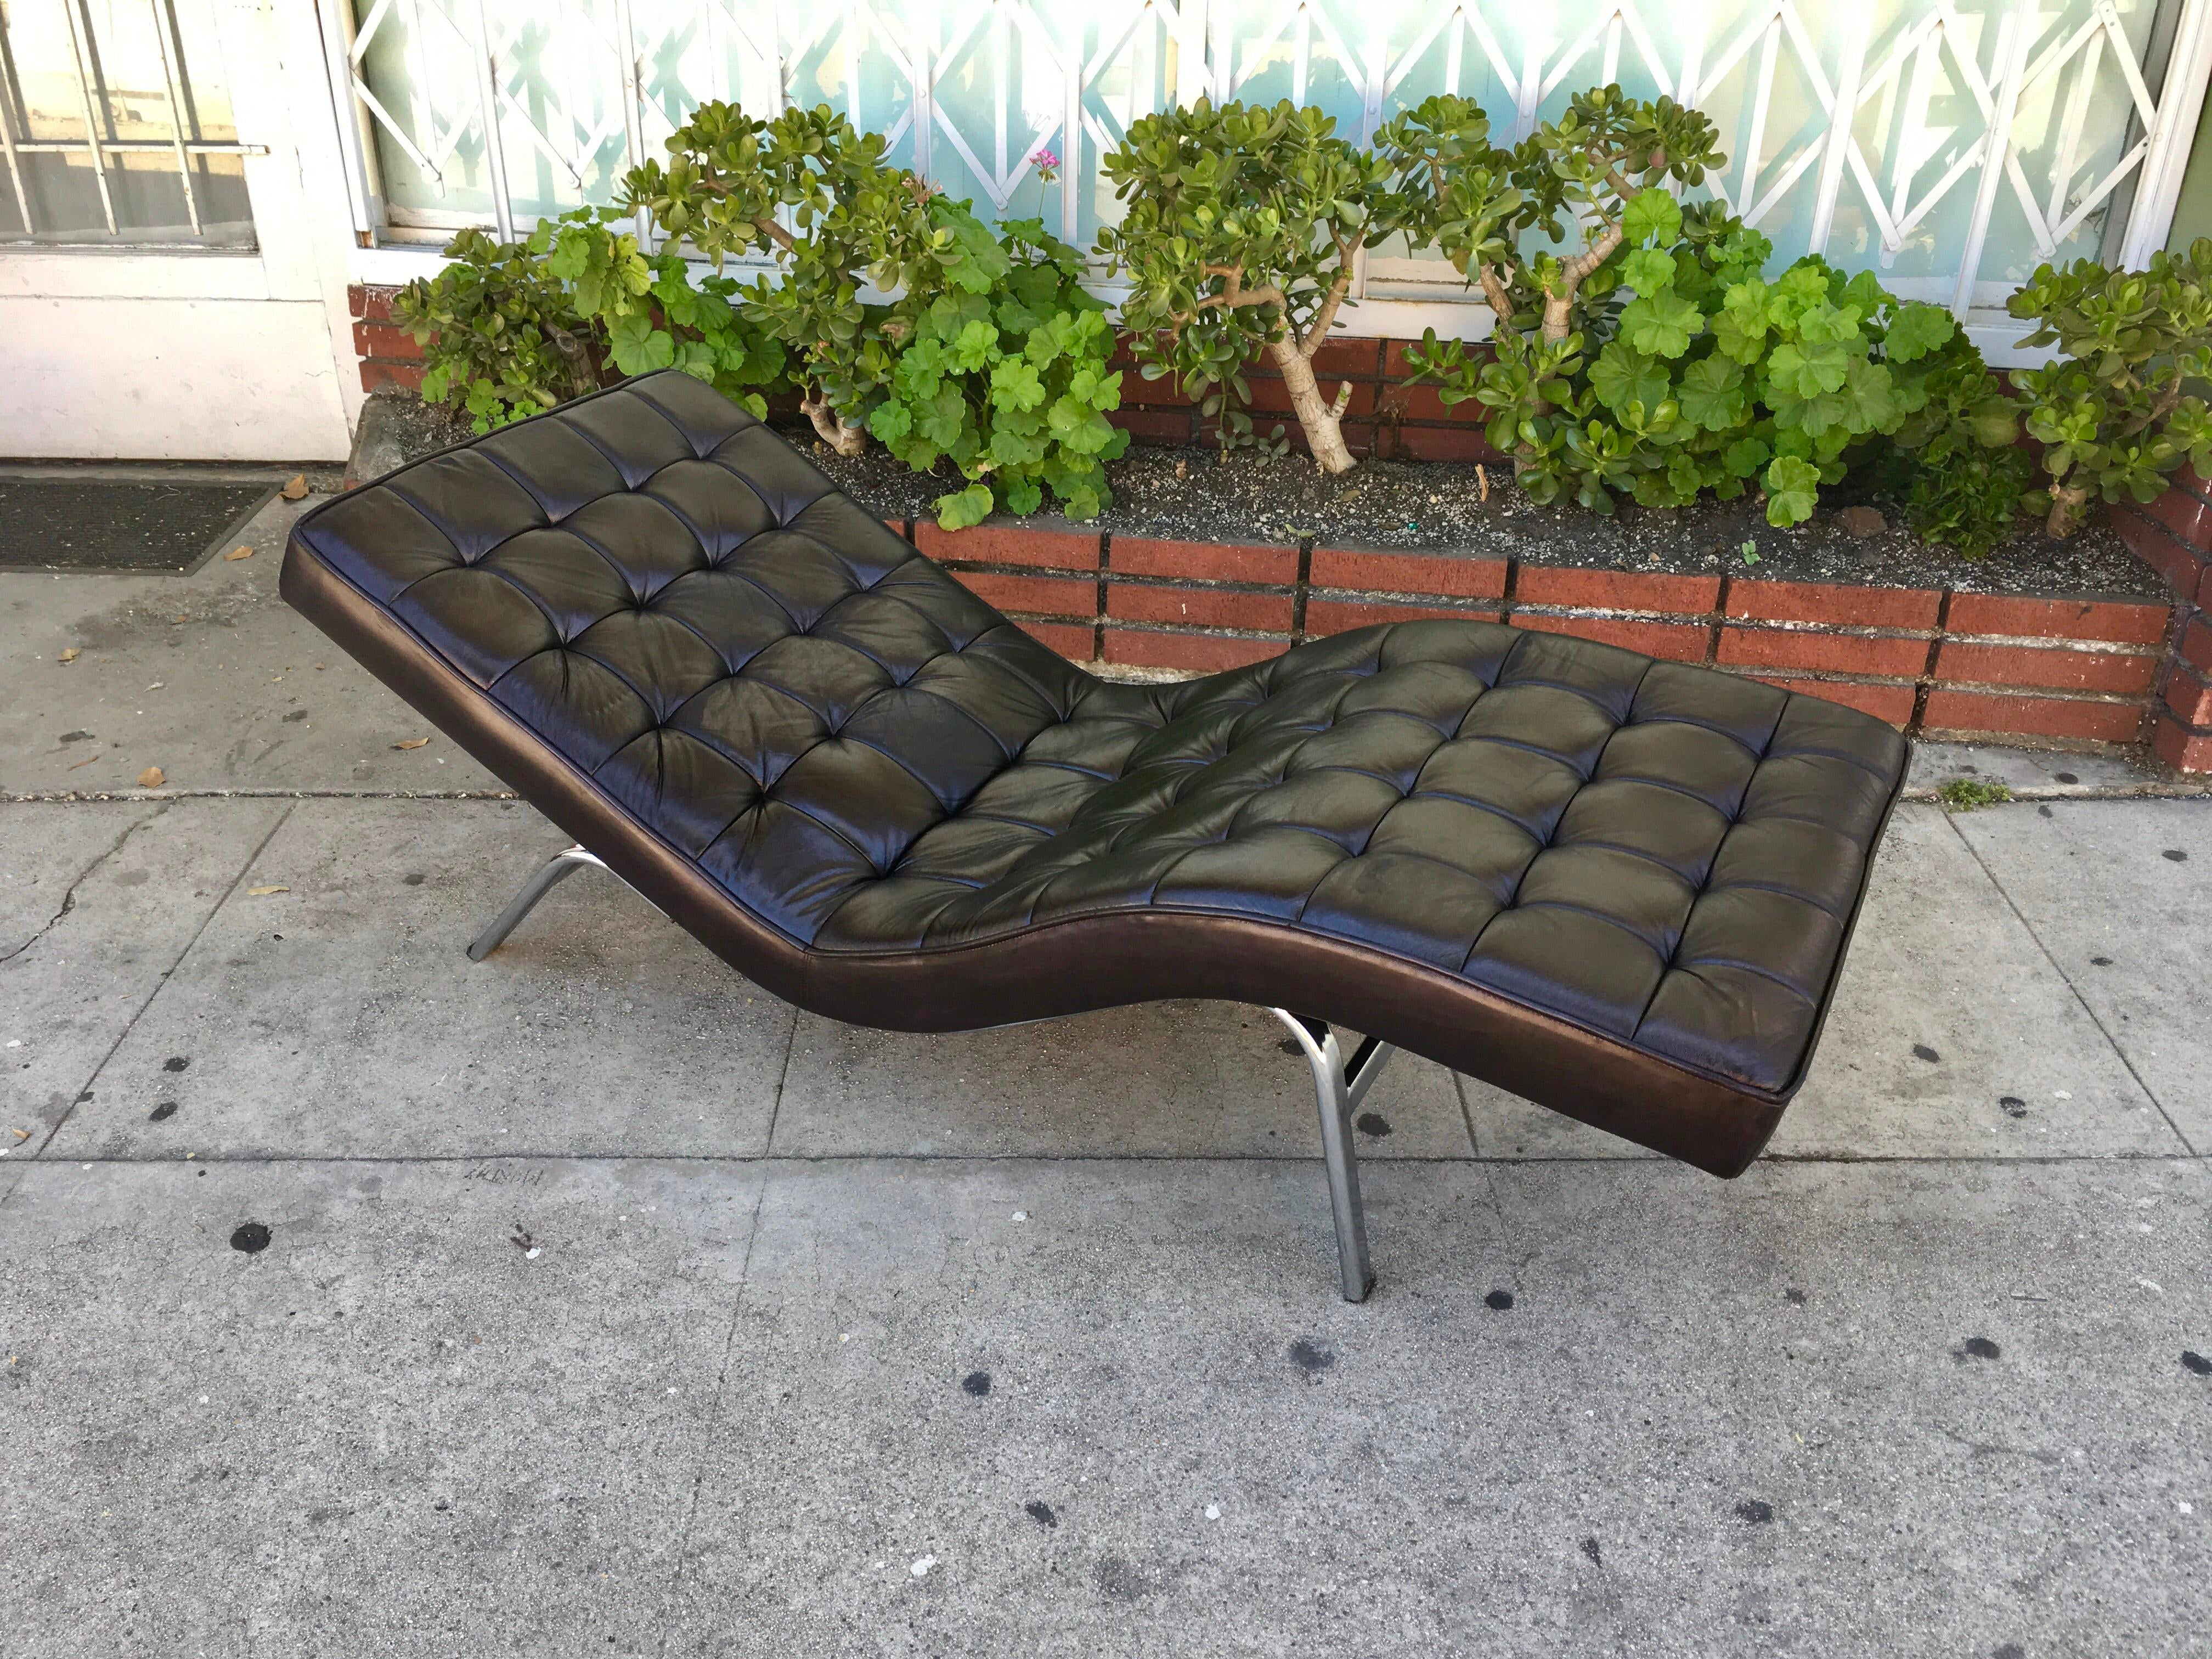 Vintage Black Leather Chaise Lounge Chair - Image 5 of 5  sc 1 st  Chairish : where to buy chaise lounge - Sectionals, Sofas & Couches